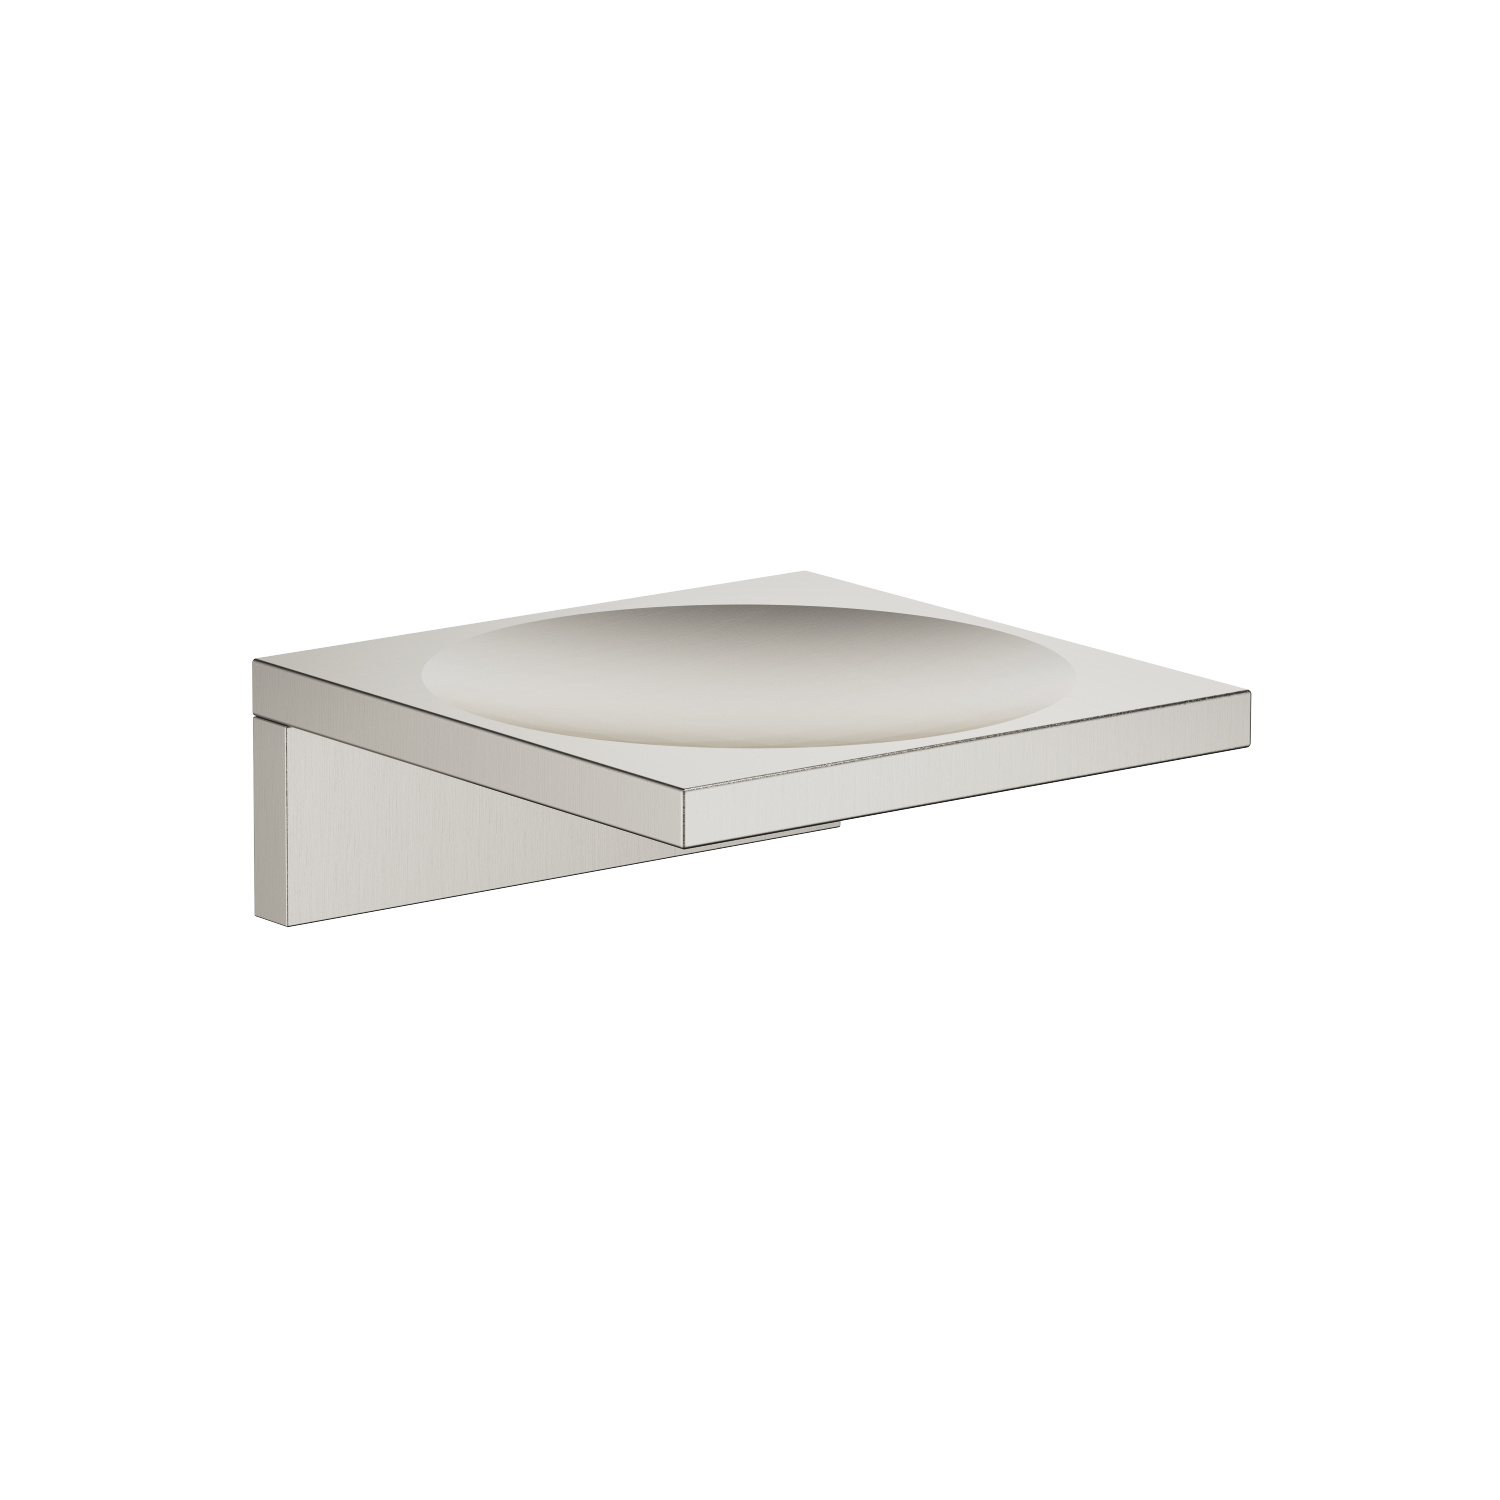 Soap dish wall model - platinum matt